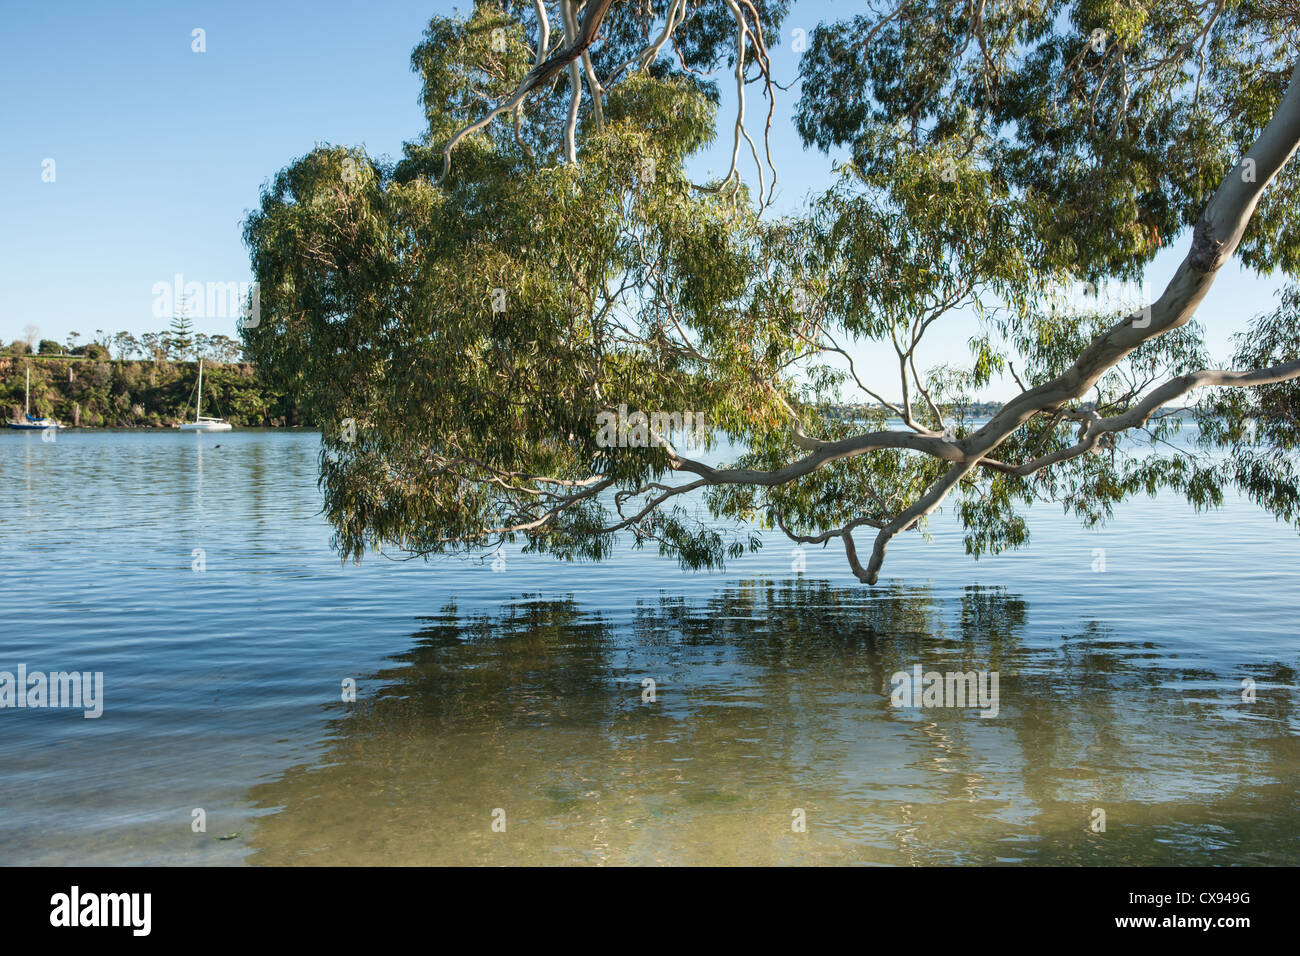 Leafy tree leans over the waters edge in an idyllic scene. - Stock Image